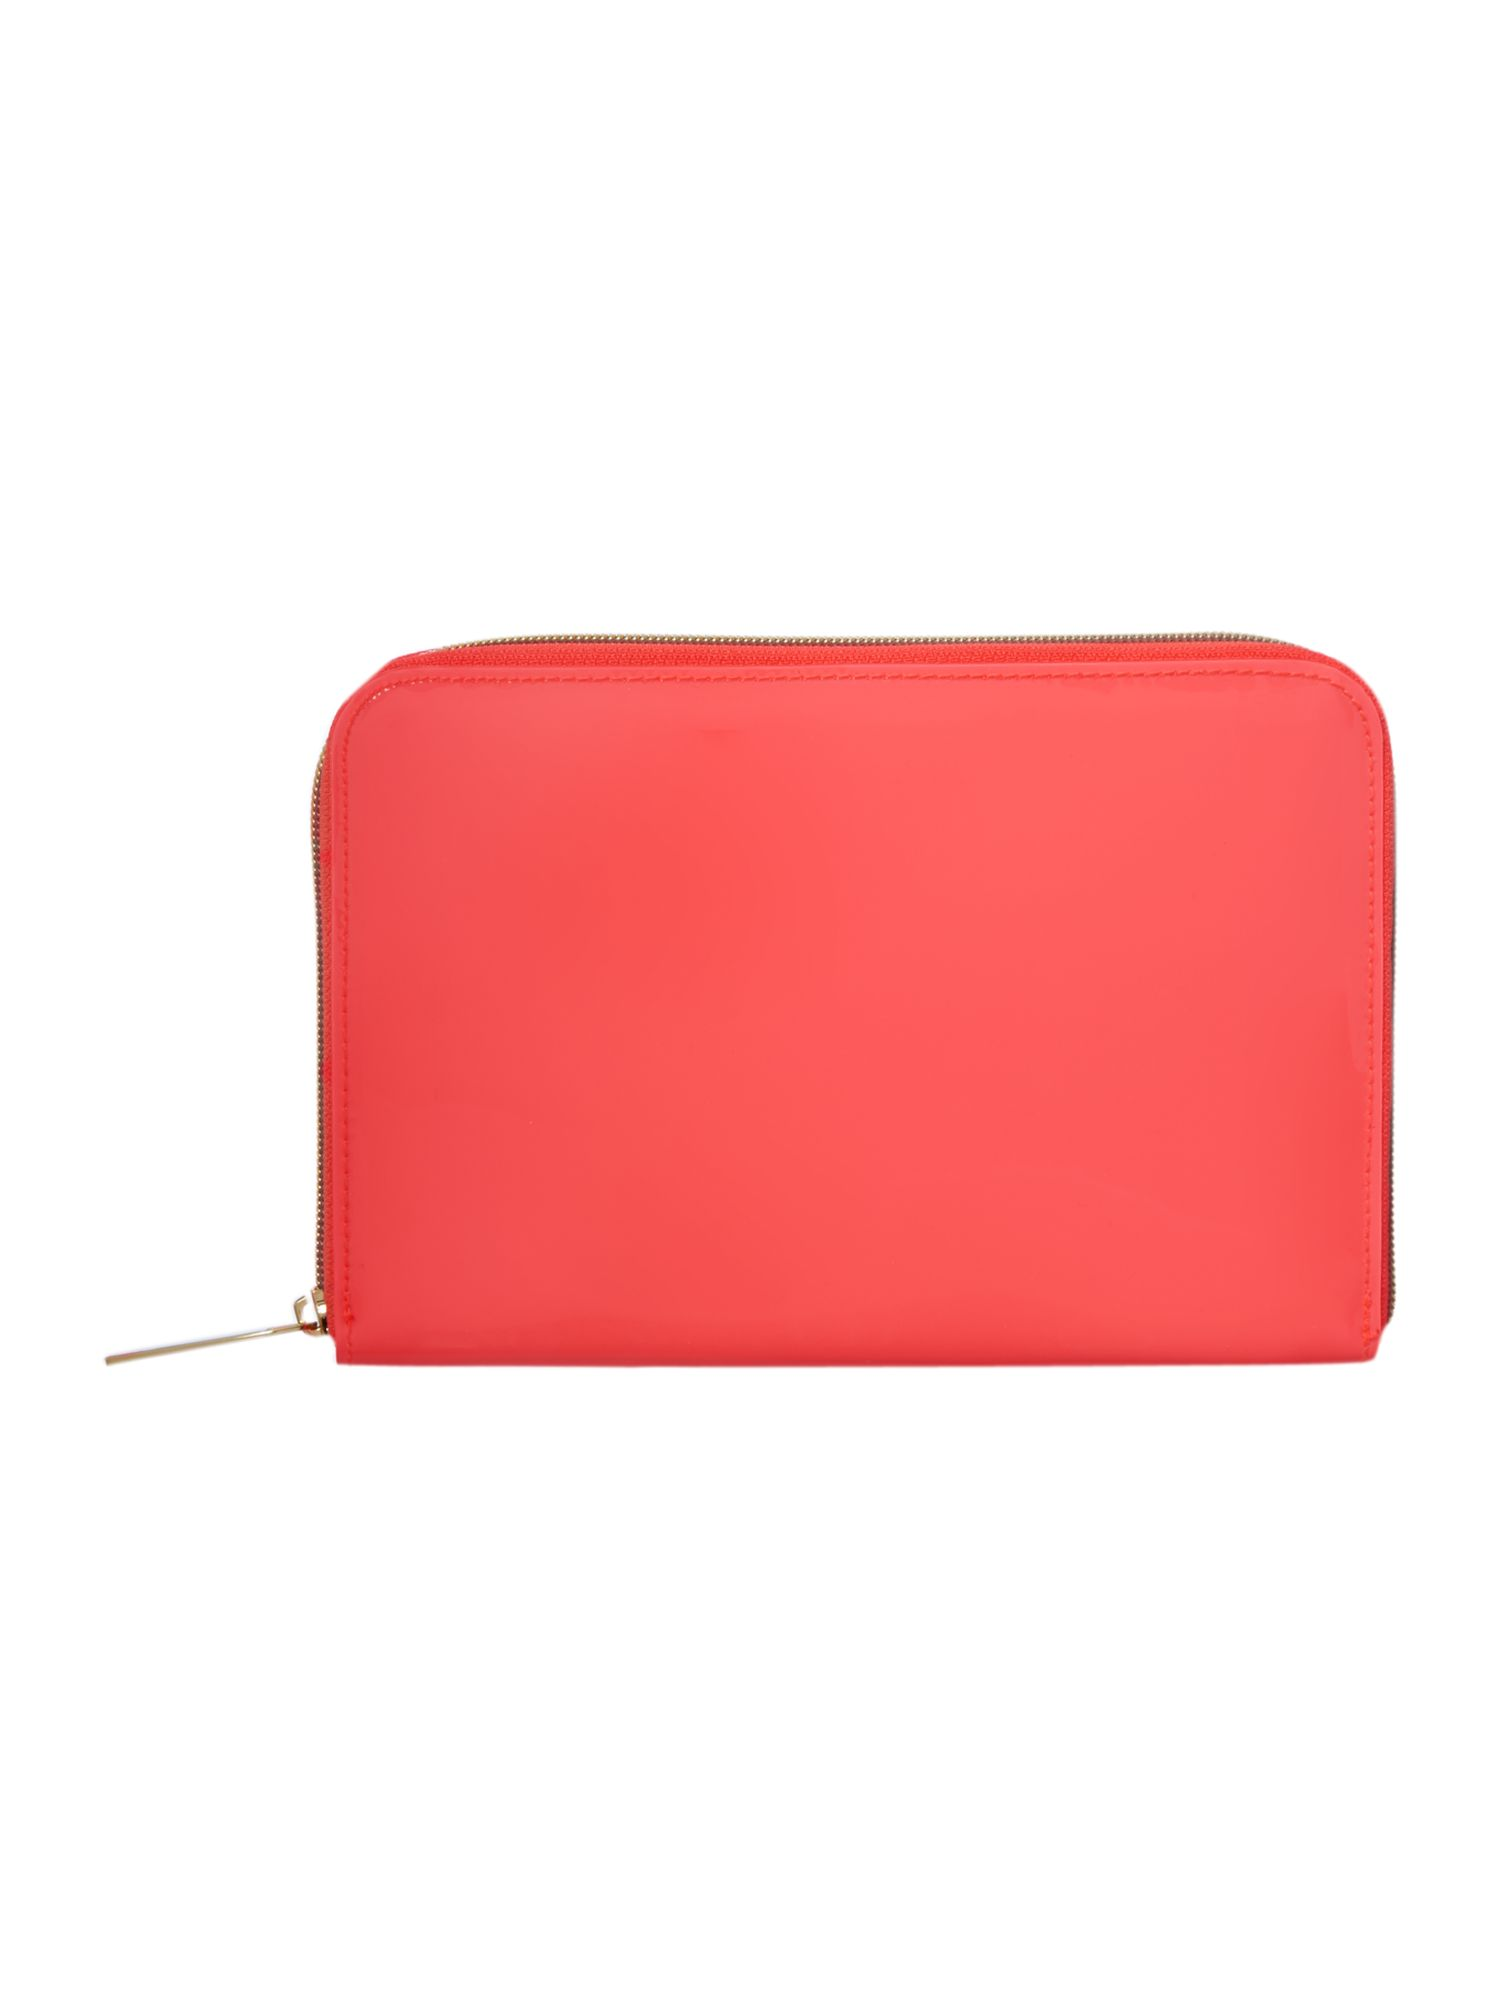 Small pink iPad case